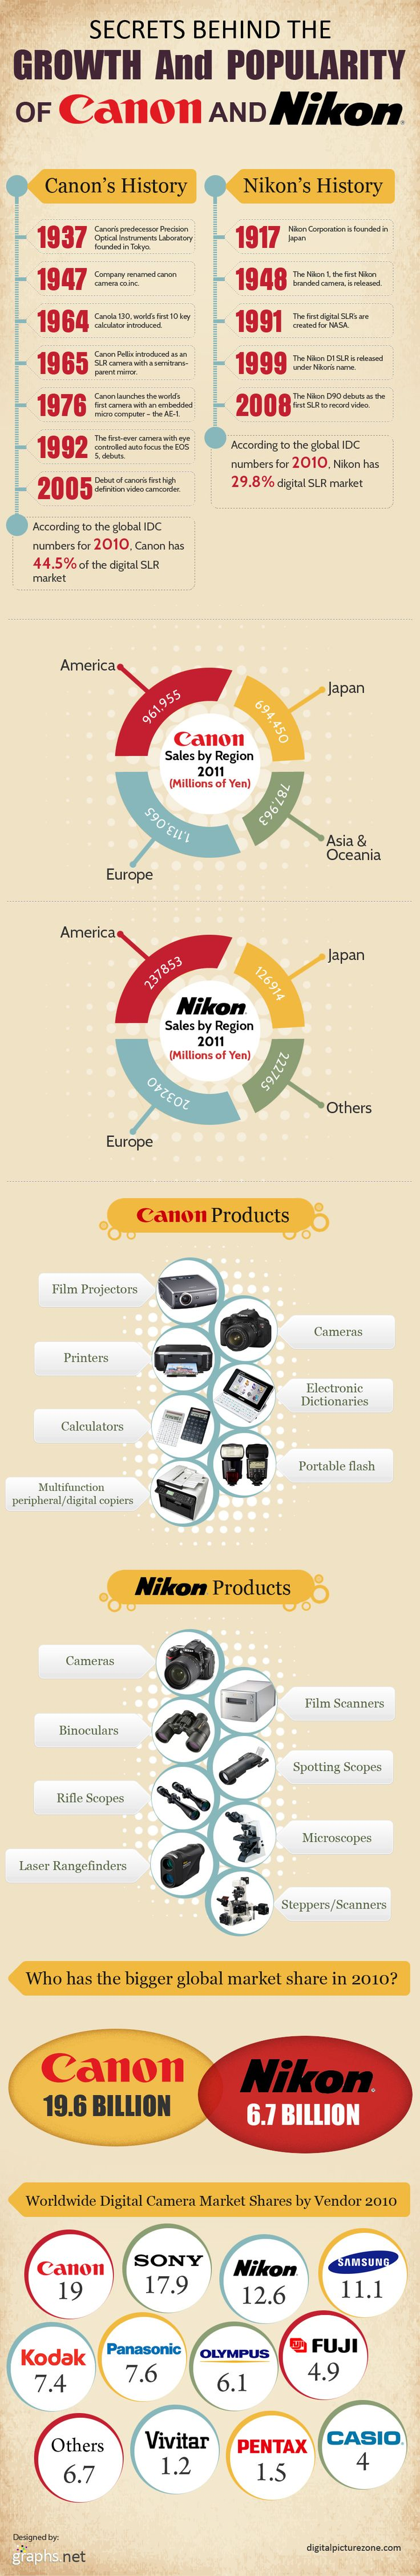 Secrets behind the Growth and popularity of Canon and Nikon [infographic]